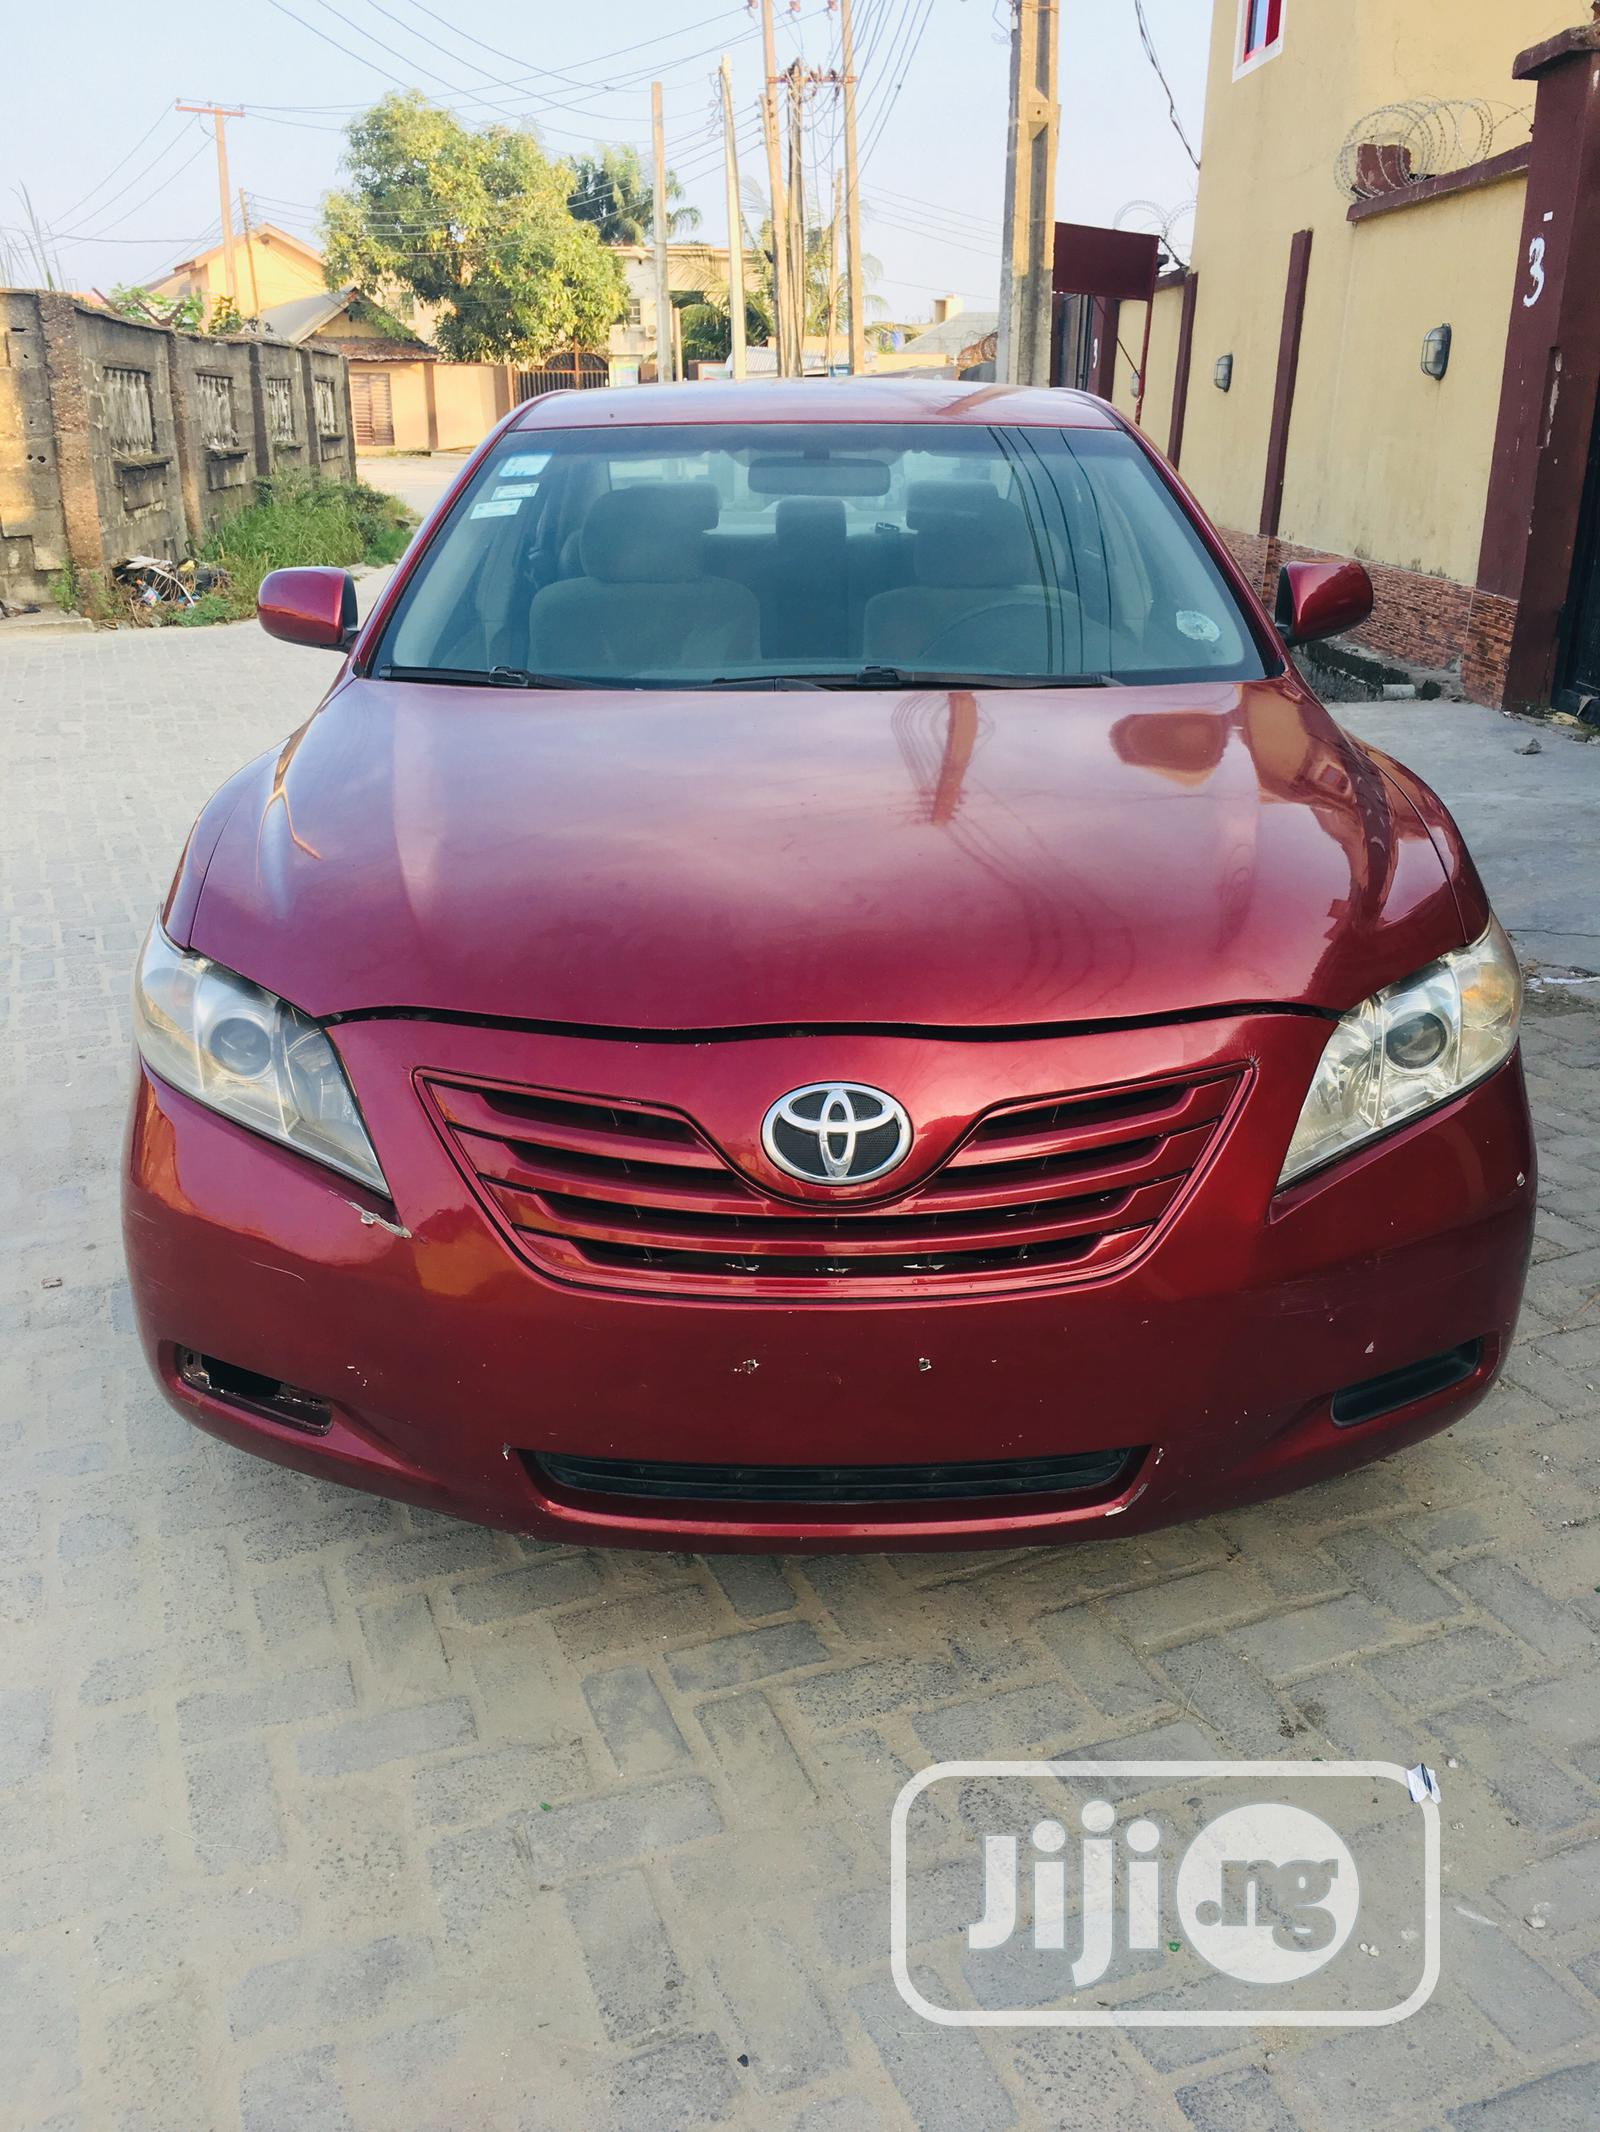 Toyota Camry 2007 Red In Ajah Cars Larry Ugwu Jiji Ng For Sale In Ajah Buy Cars From Larry Ugwu On Jiji Ng